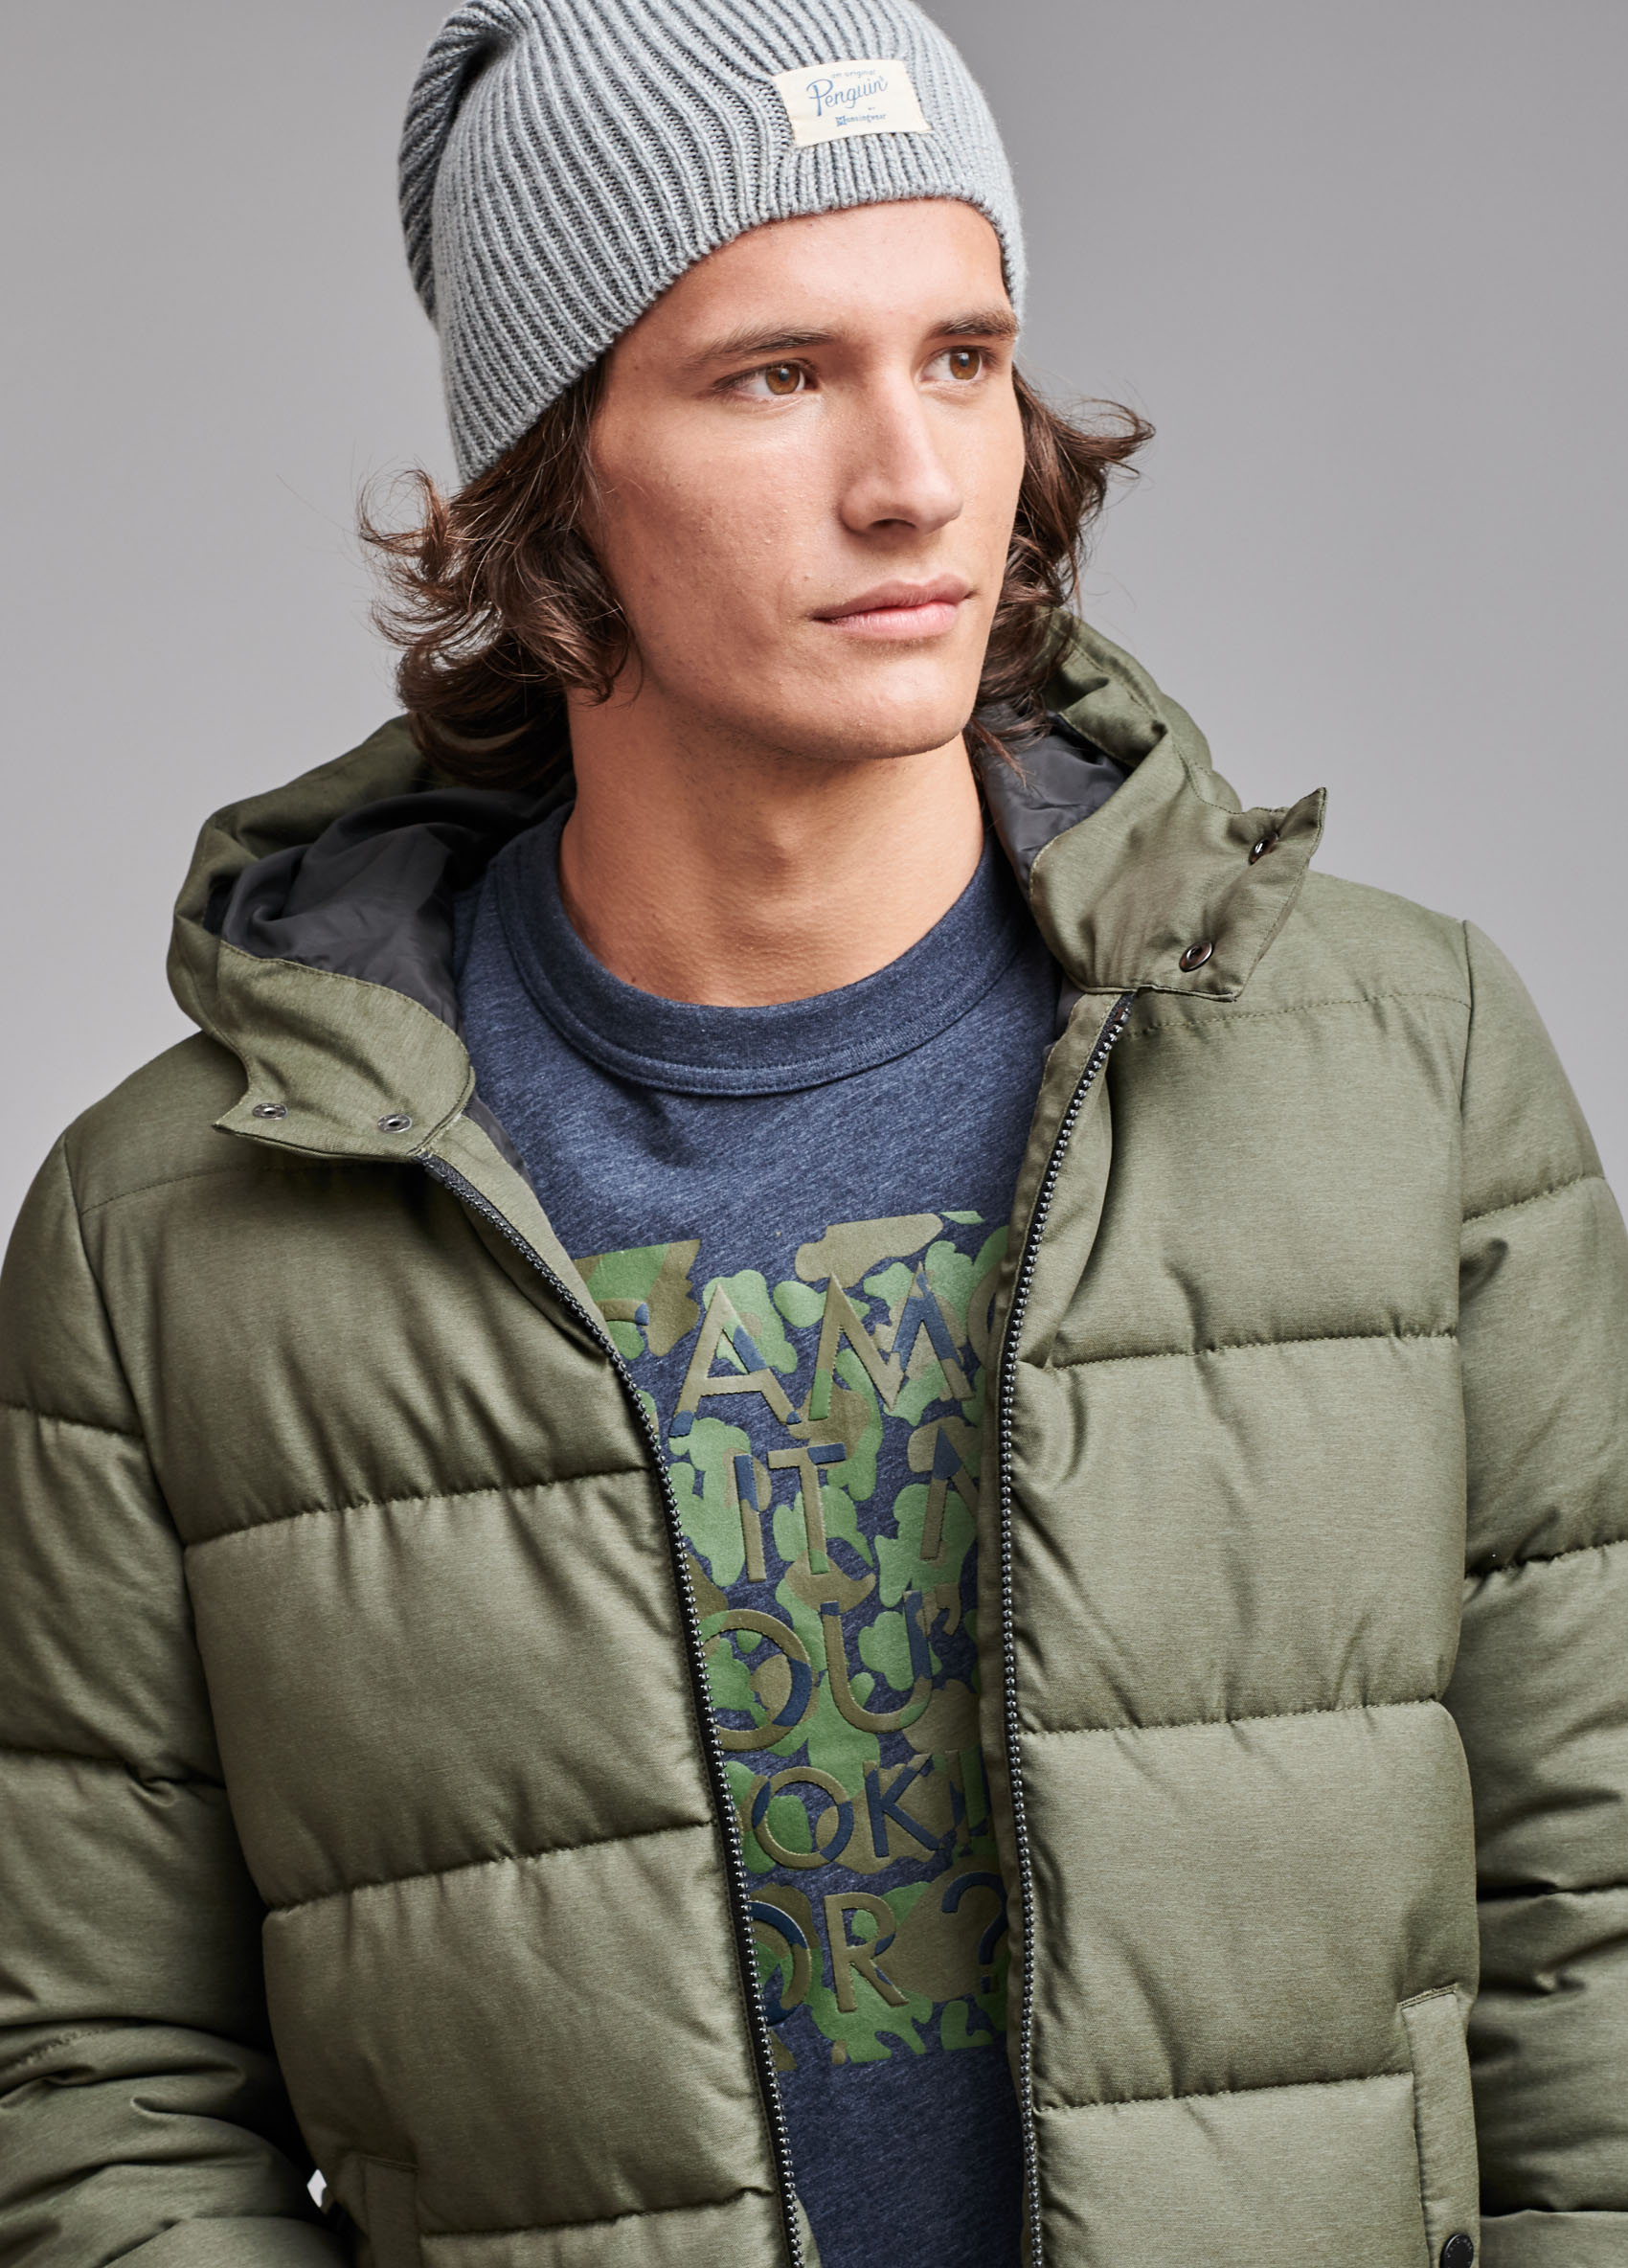 penguin_insulated-melange-puffer-jacket_58-15-2019__picture-8930